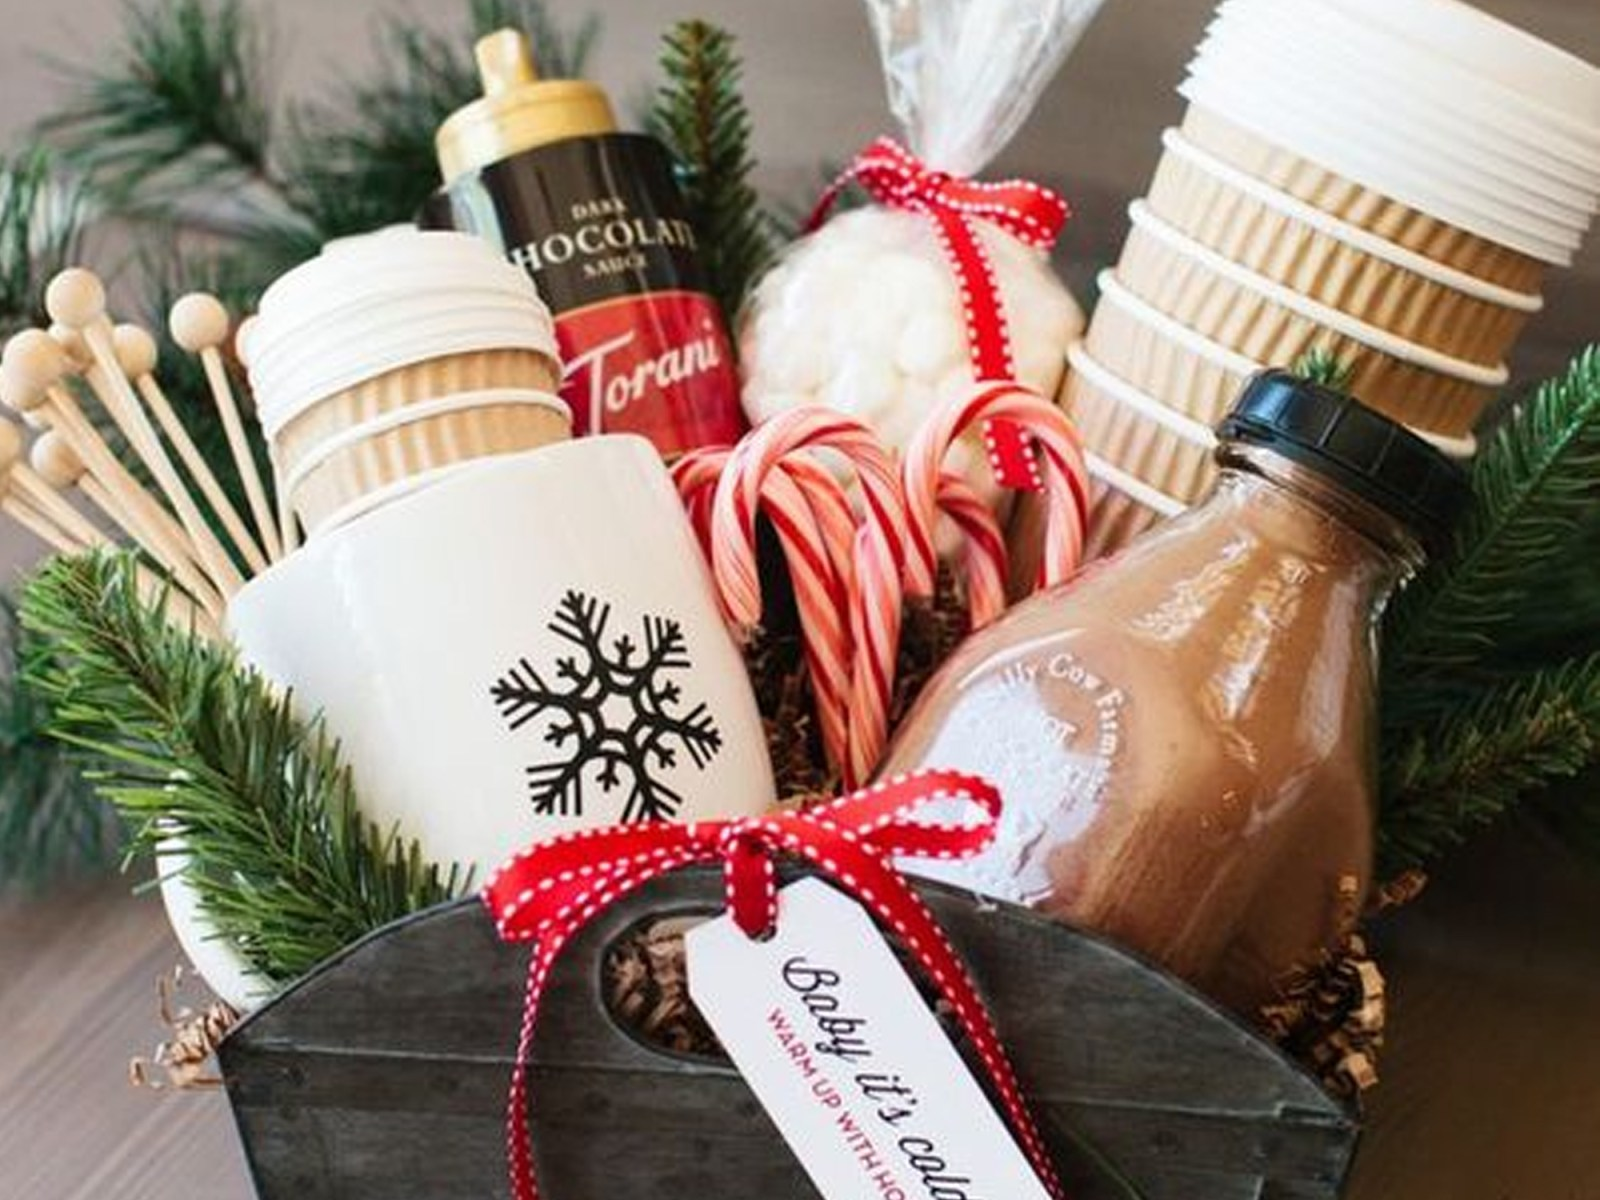 If you're searching for Yankee Swap gifts for a special person, these are the best Yankee Swap gift ideas if you want something cute or funny!